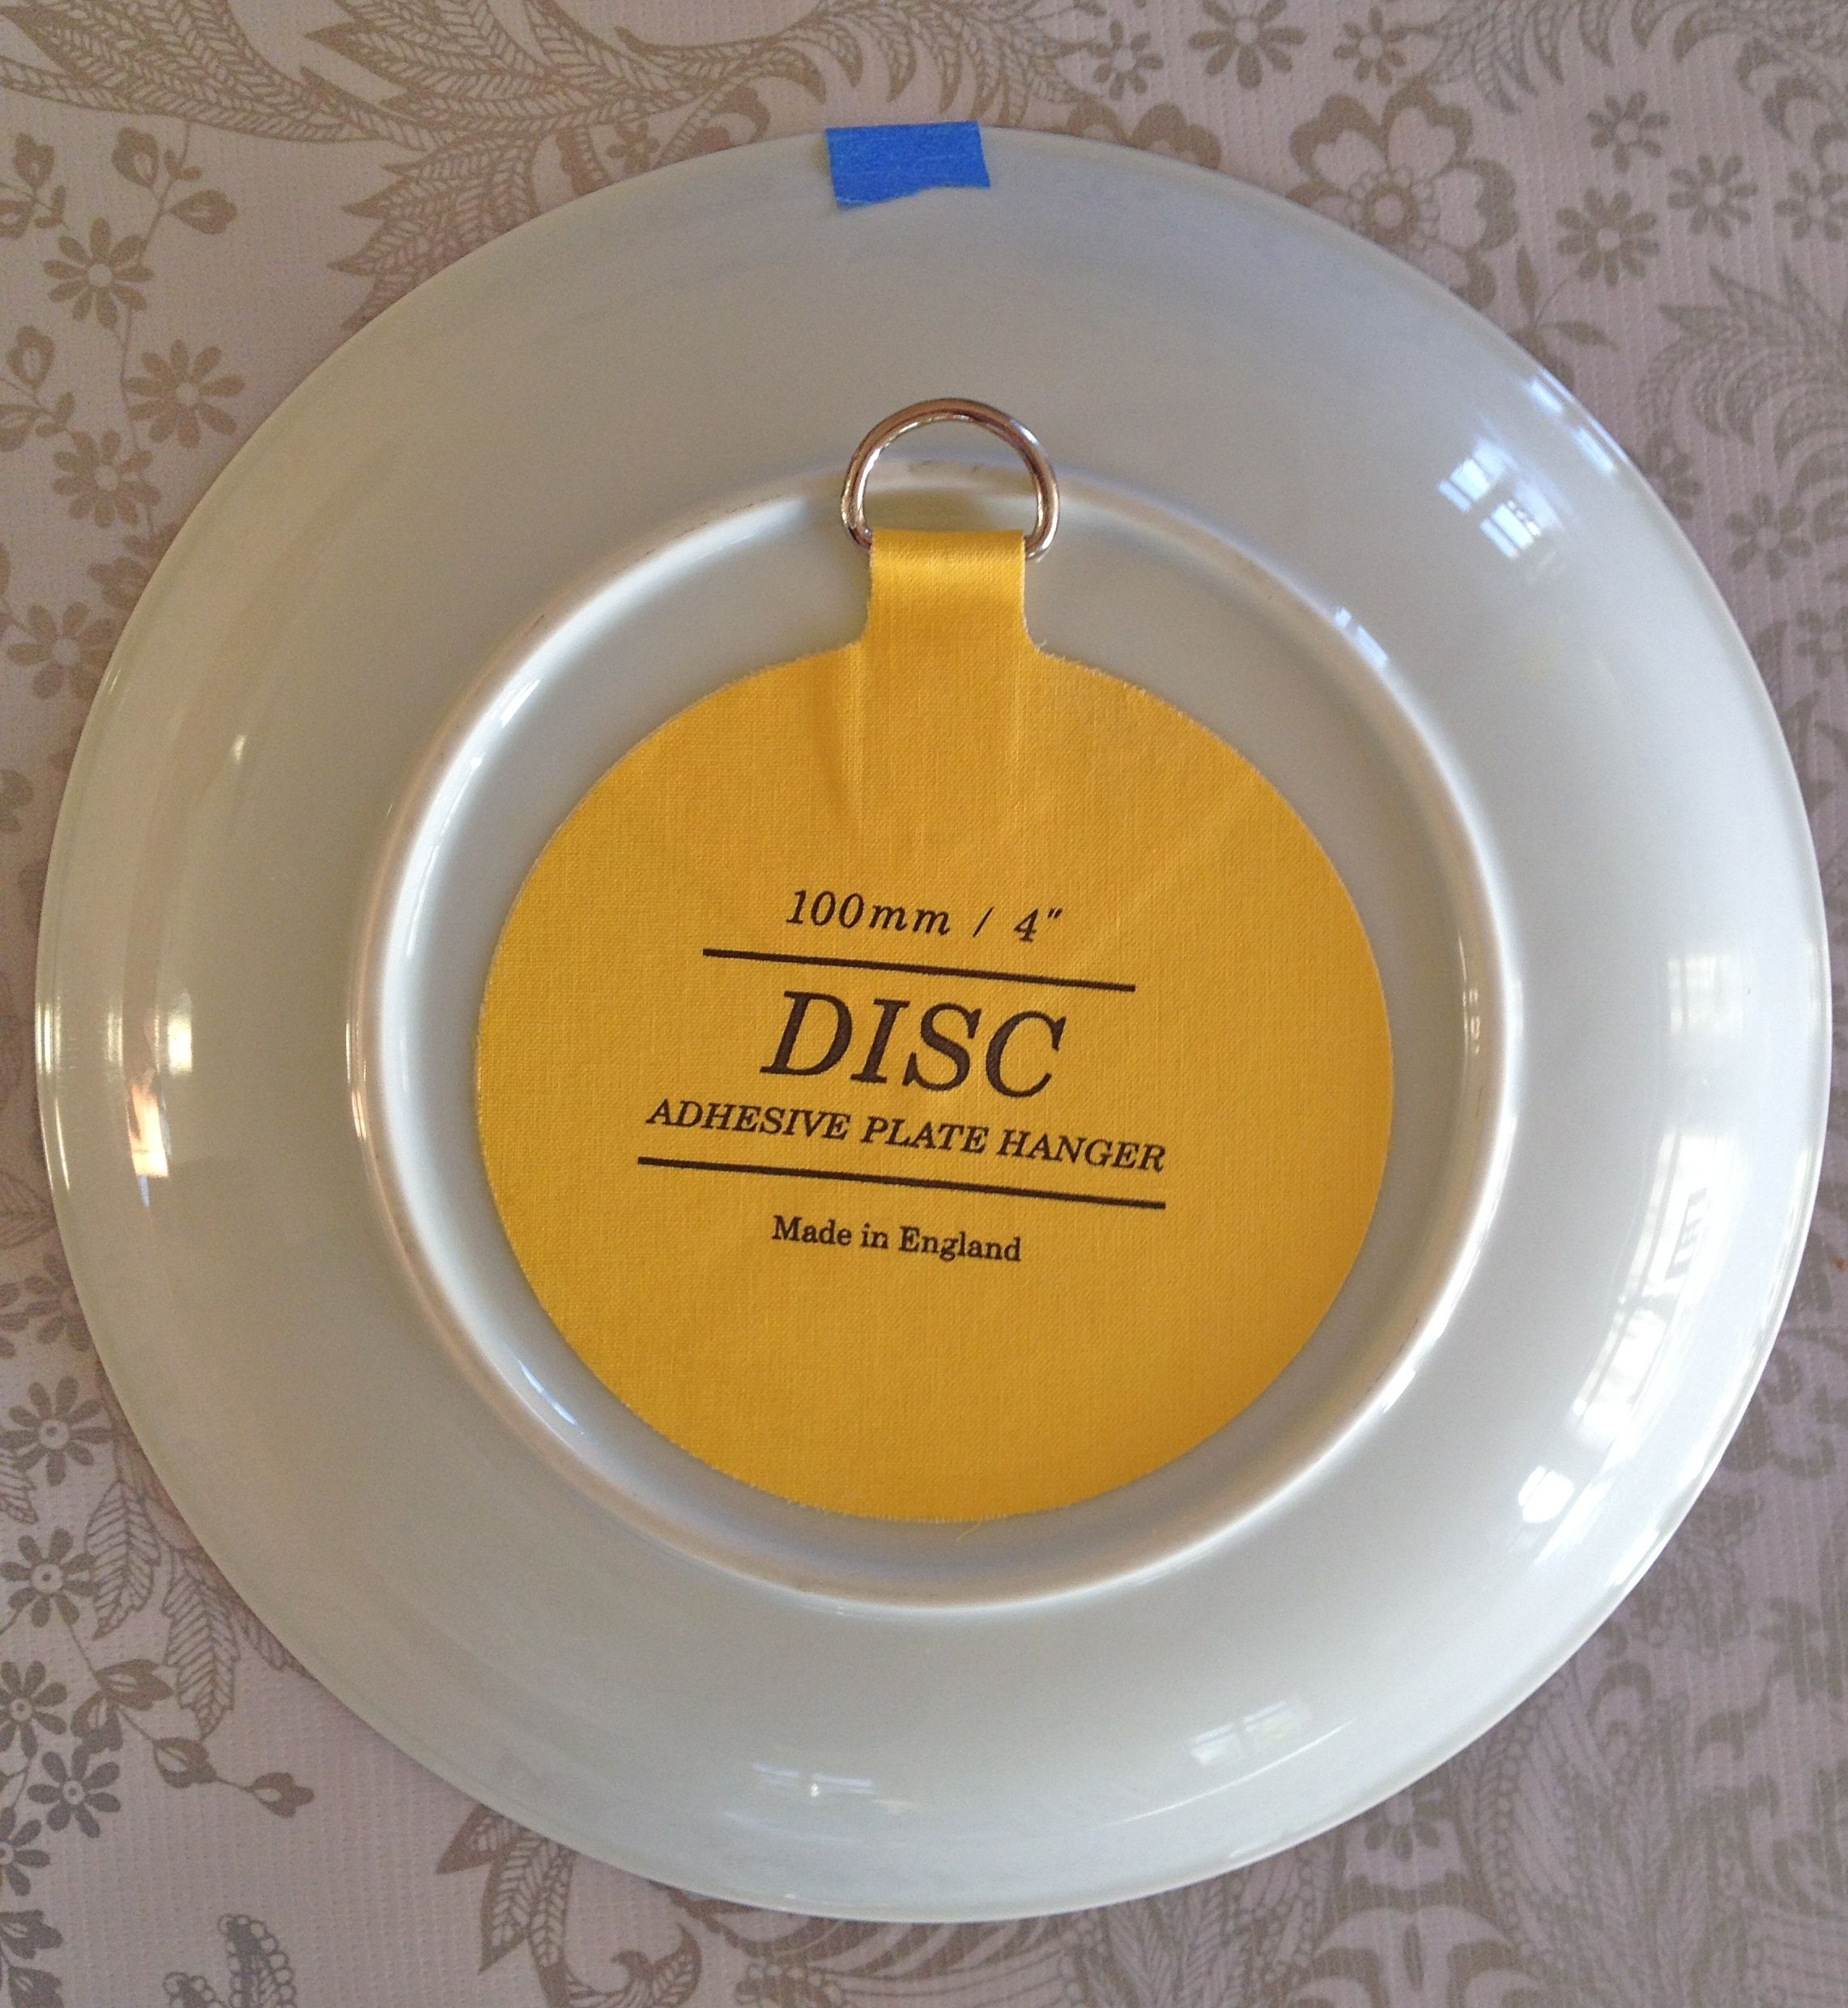 adhesive plate disk - can buy on Amazon here http://www.amazon.com ...